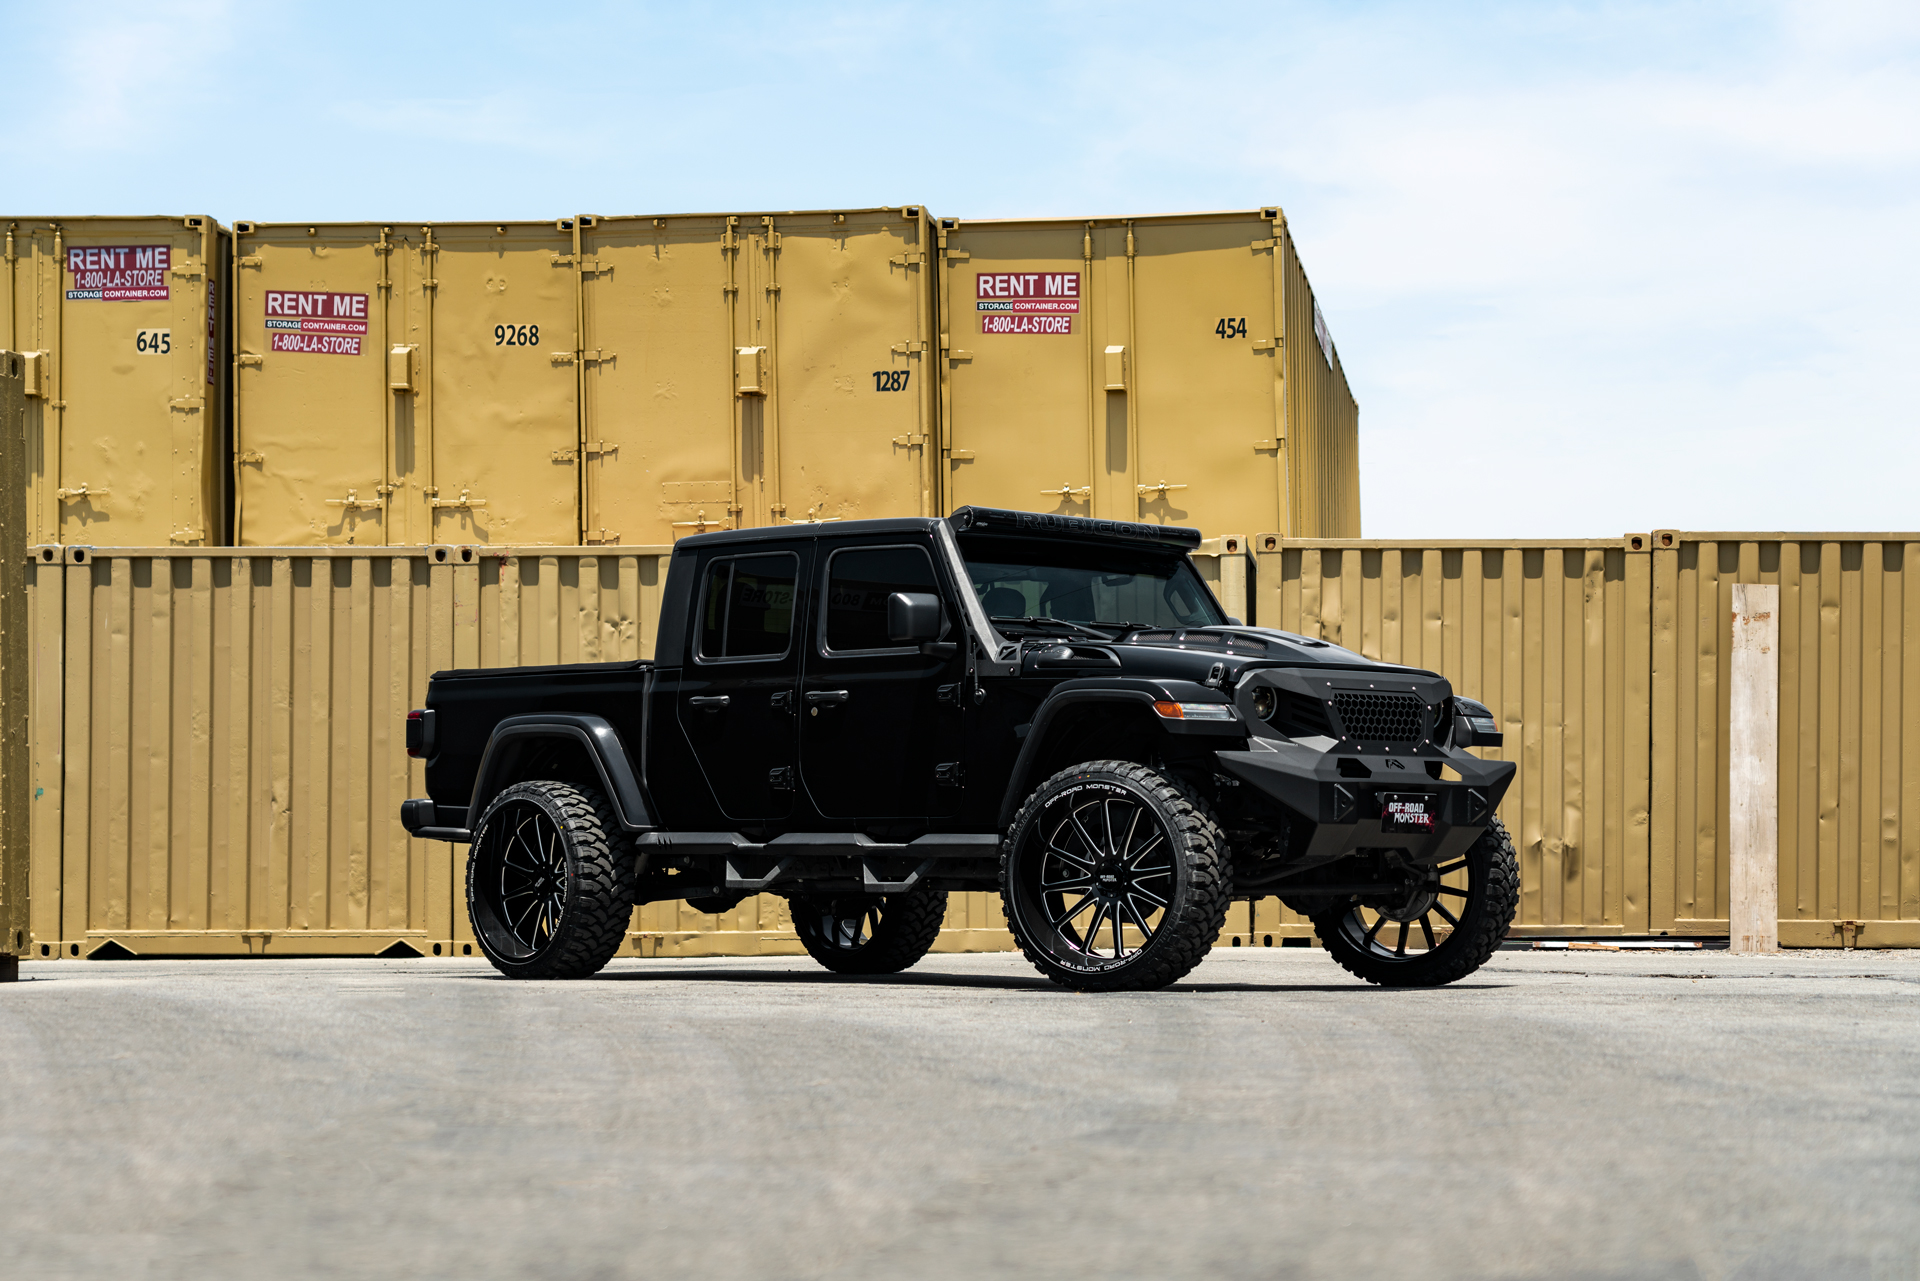 OffRoad Monsterm26 26x12 Wheels on a Jeep Gladiator